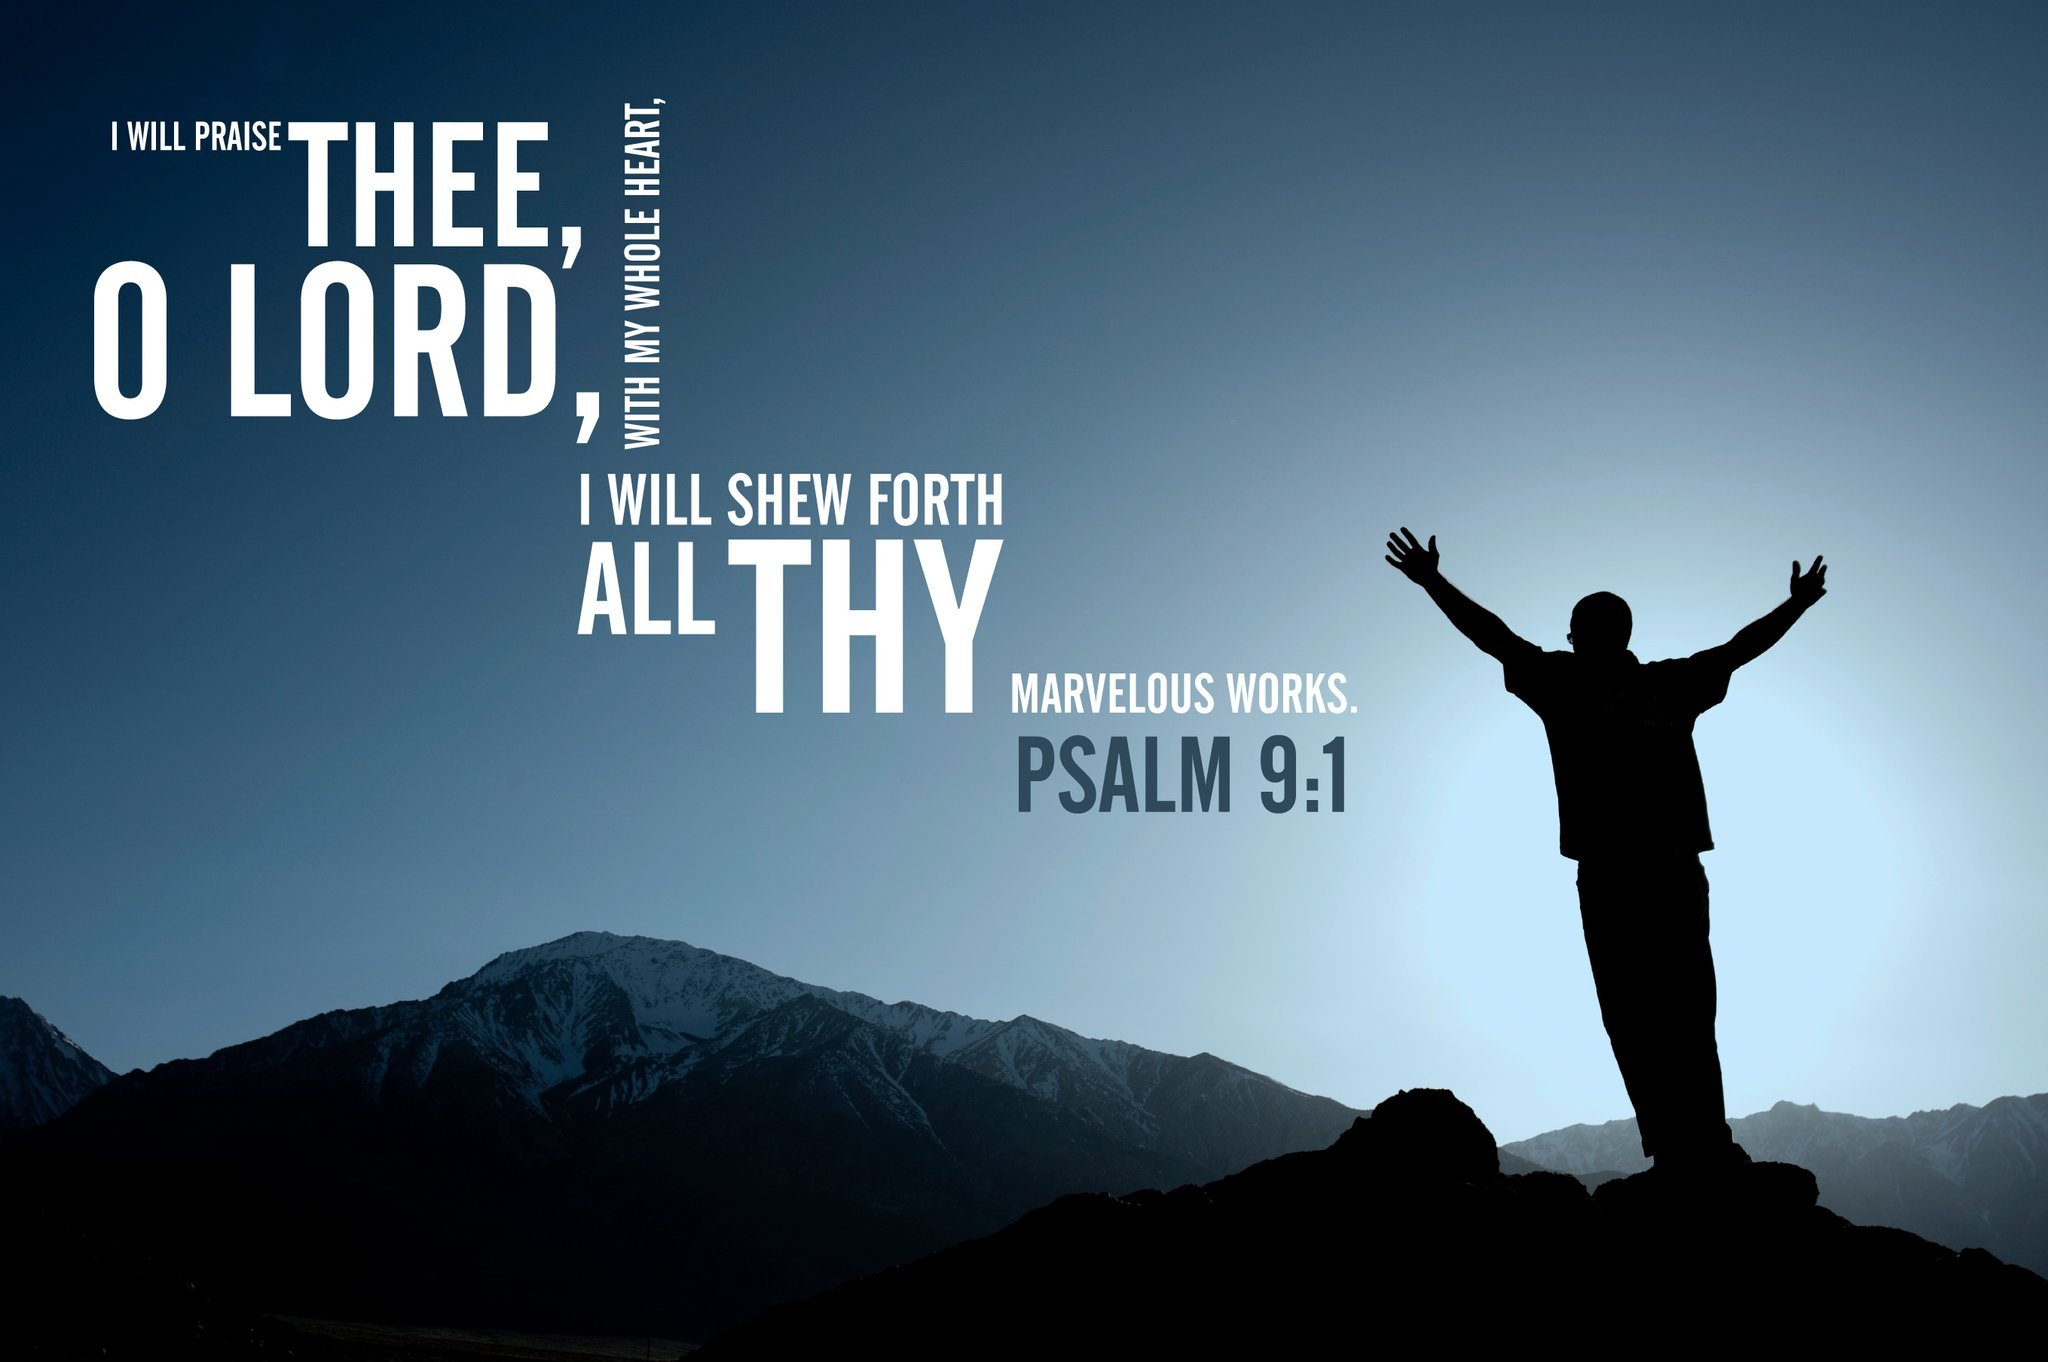 Praise The Lord Wallpaper   Christian Wallpapers and Backgrounds 2048x1362